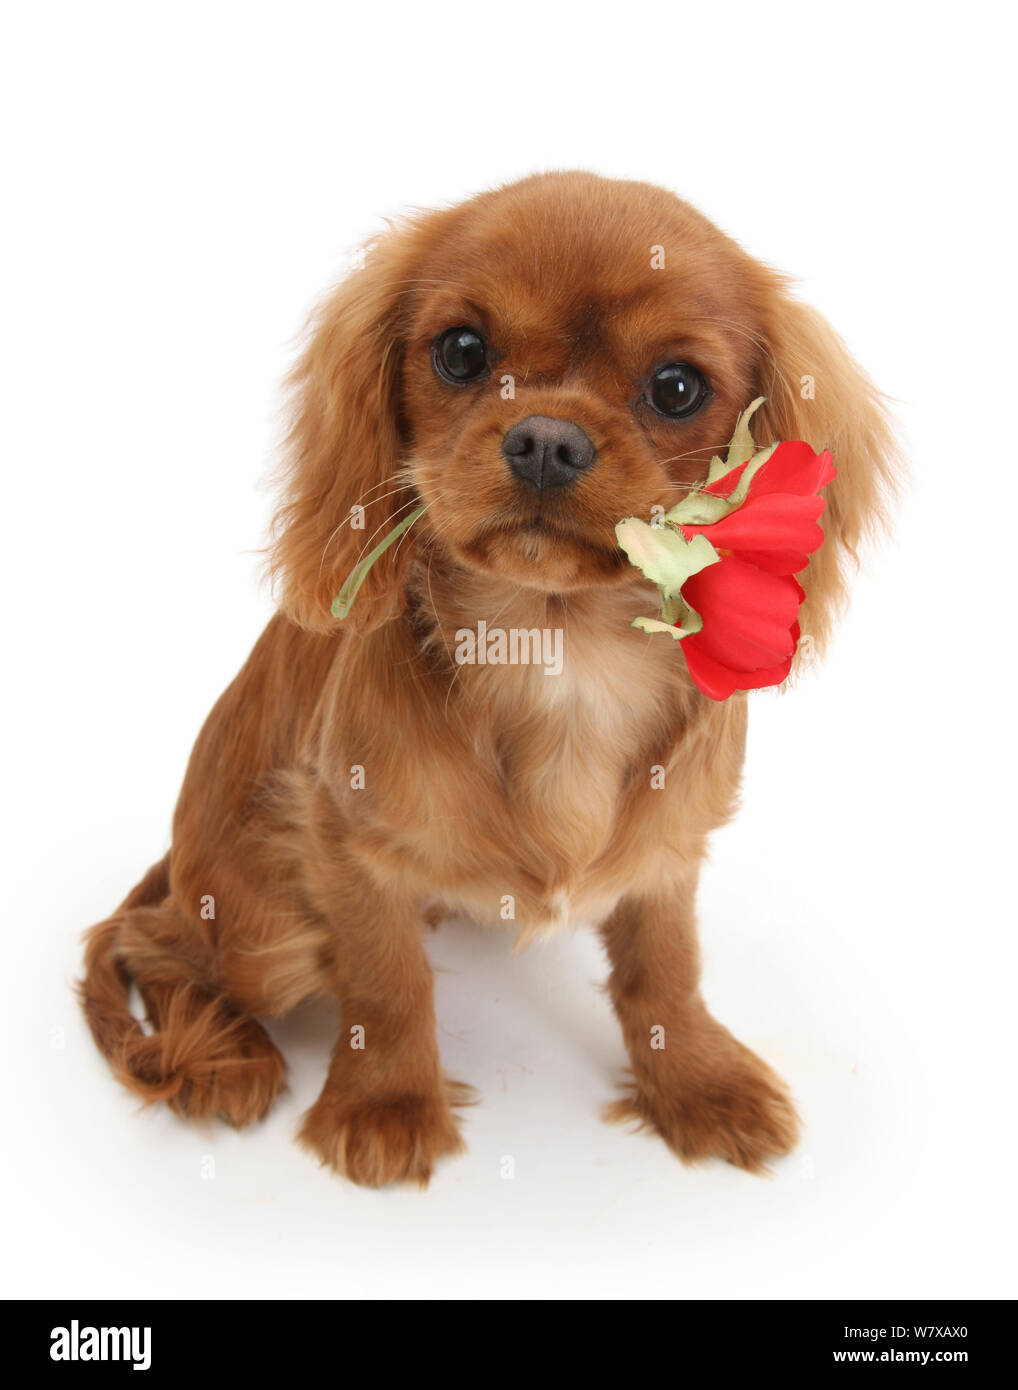 Ruby Cavalier King Charles Spaniel Pup Flame Age 12 Weeks Hing A Red Rose Stock Photo Alamy